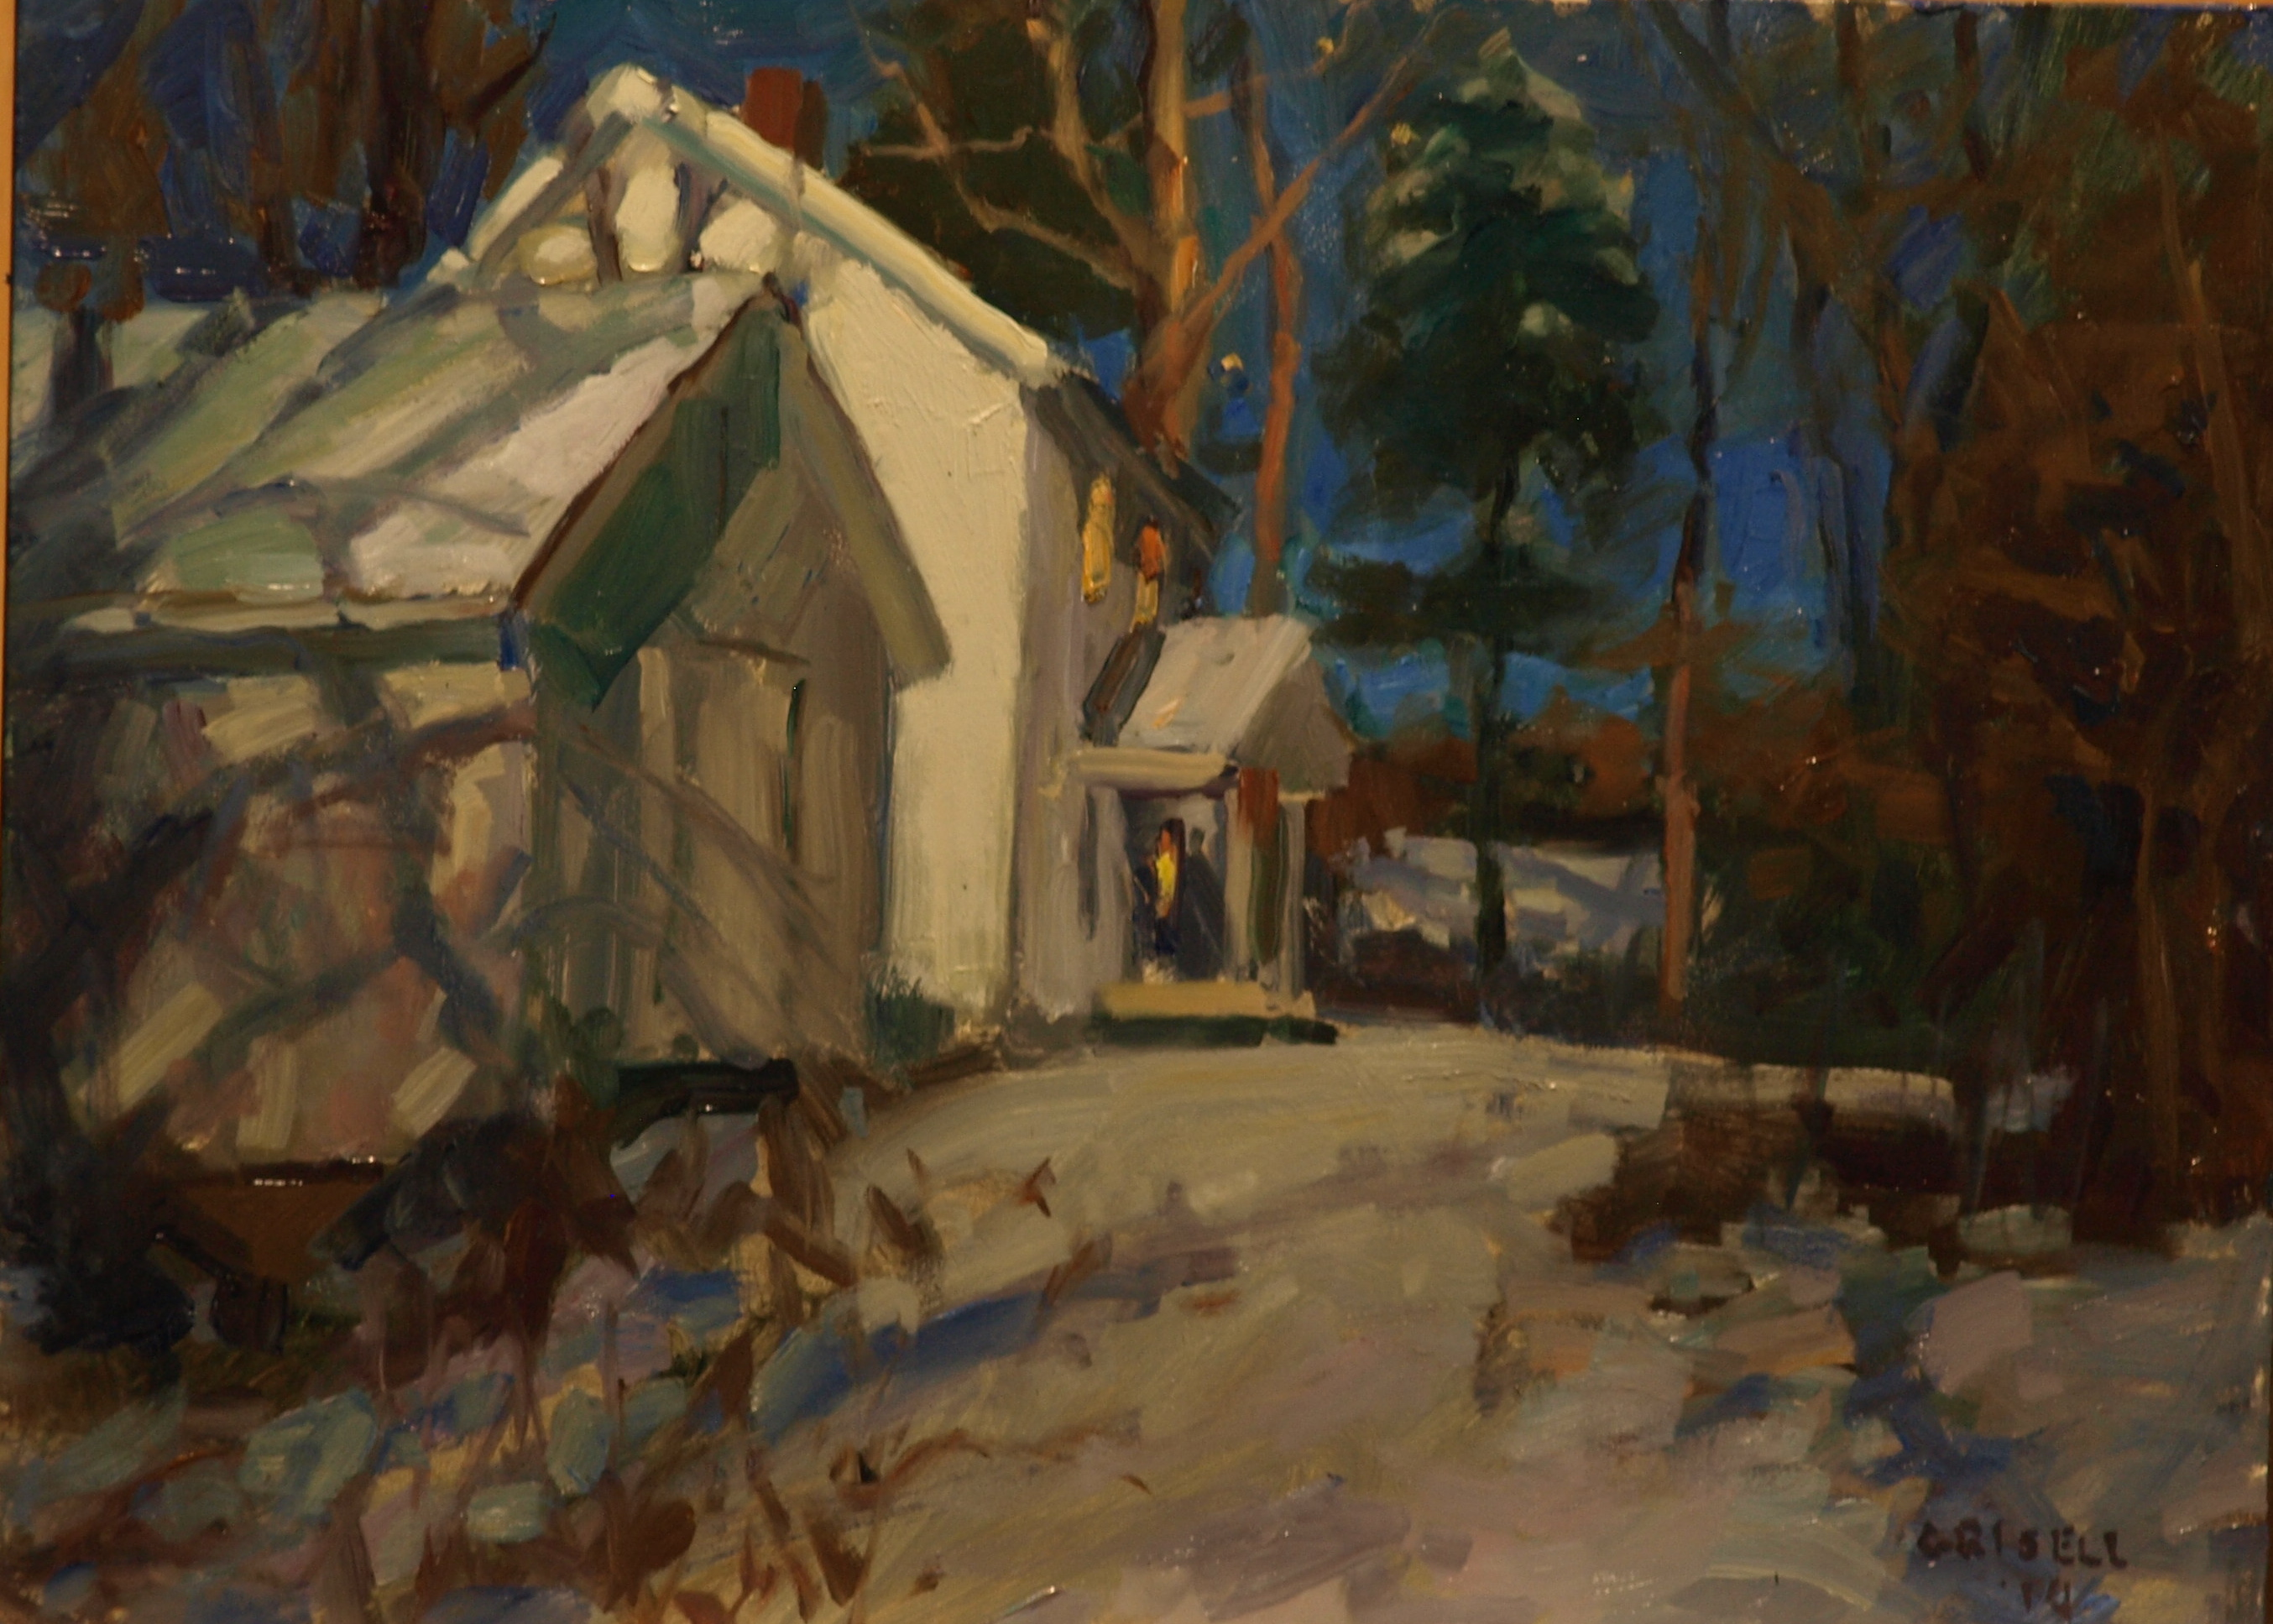 Winter Evening, Oil on Panel, 12 x 16 Inches, by Susan Grisell, $275